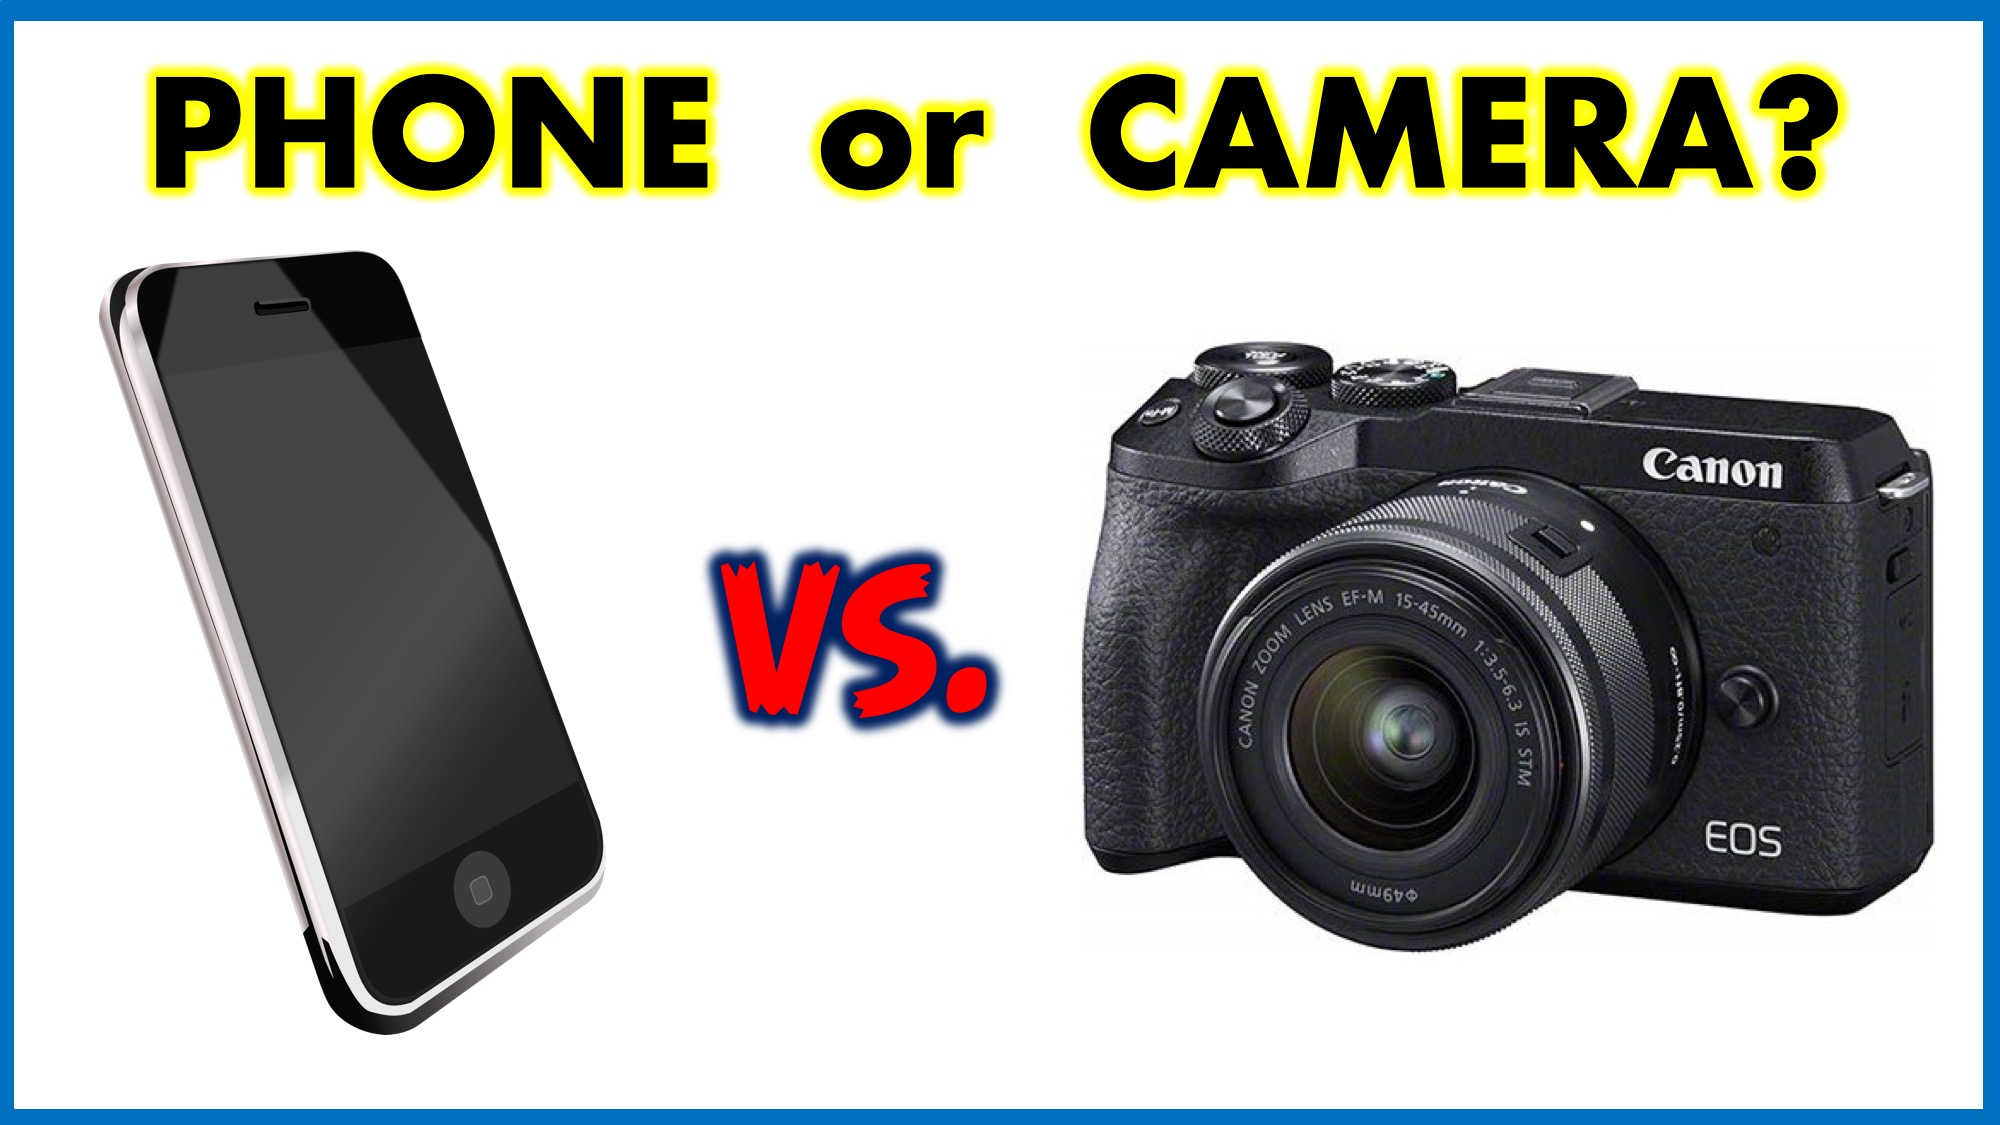 Phone vs. Mirrorless Camera